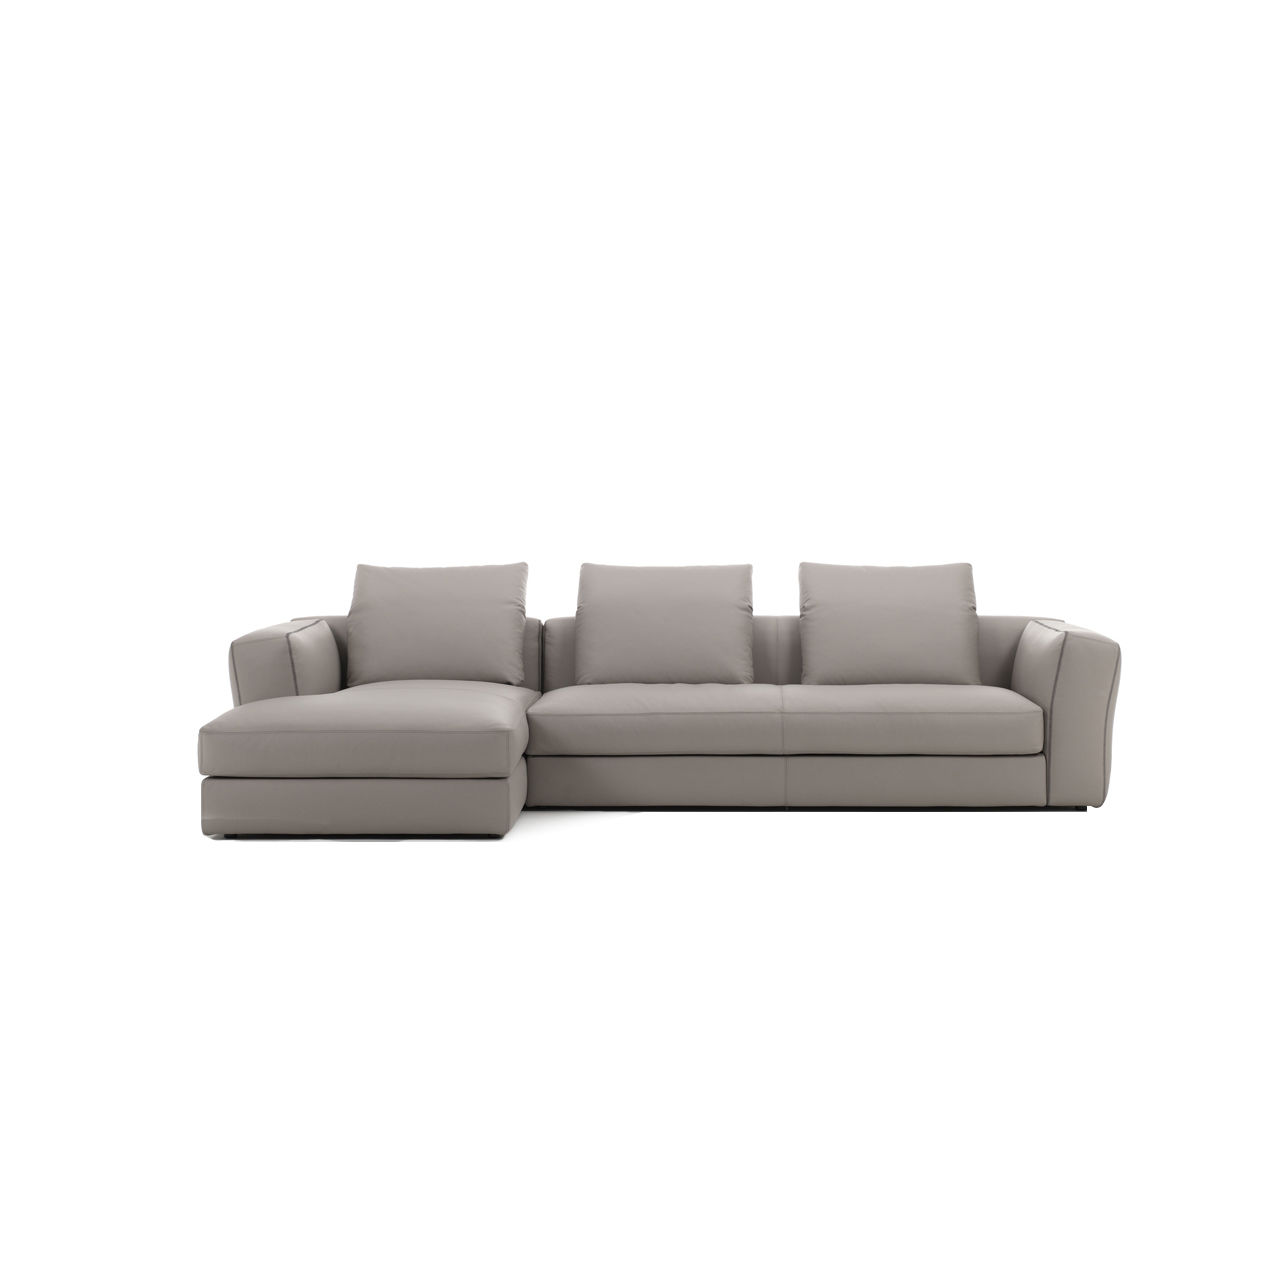 Modular Sofa / Contemporary / Leather / 3 Seater   FLOWER By Gianmaria  Conficconi